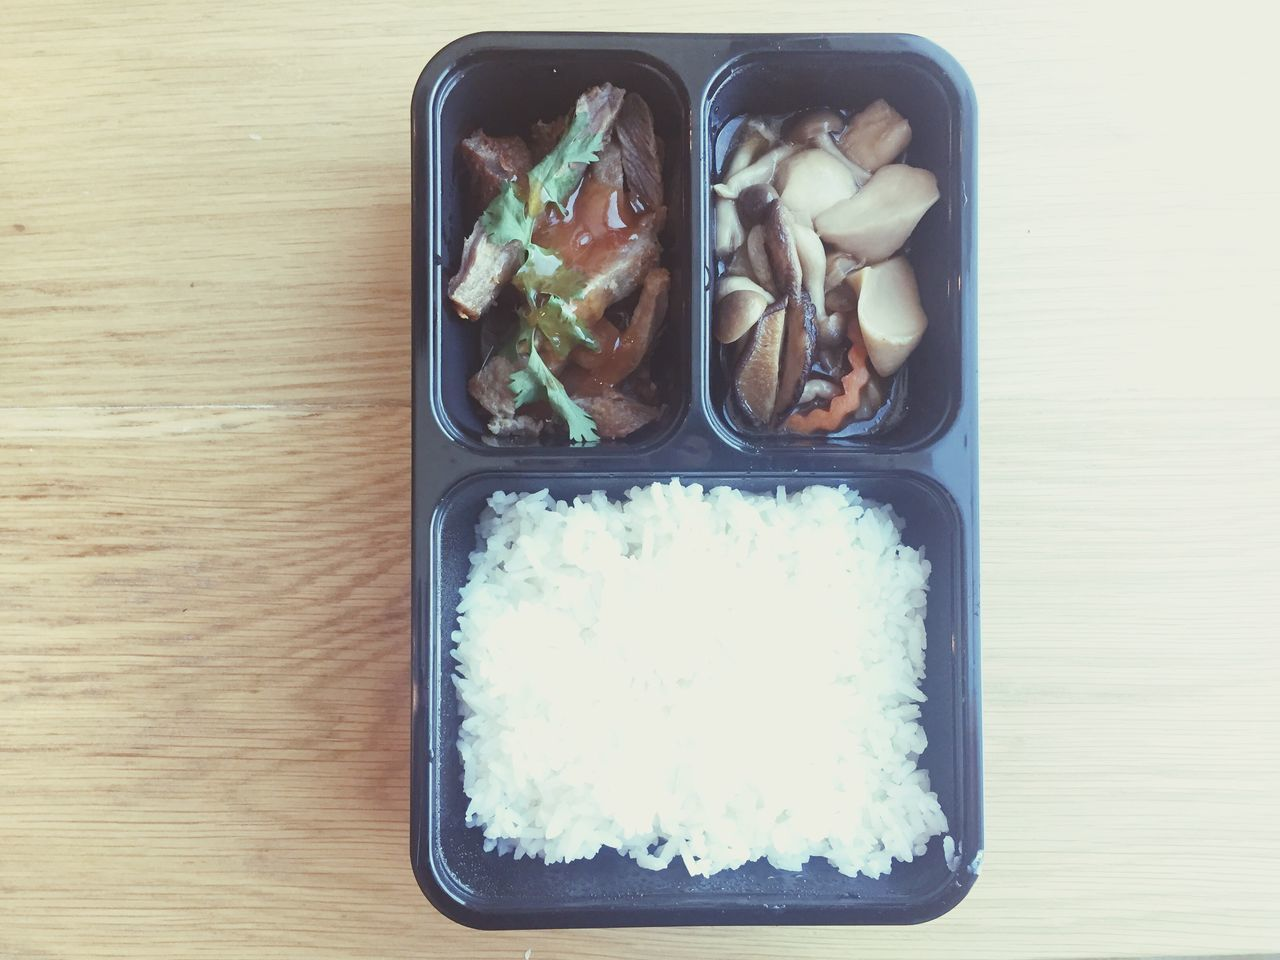 Lunch box Food And Drink Healthy Eating Lunch Box Ready-to-eat Freshness Meal Indoors  Eat Meal Freshness Pork Serving Size Table Rice